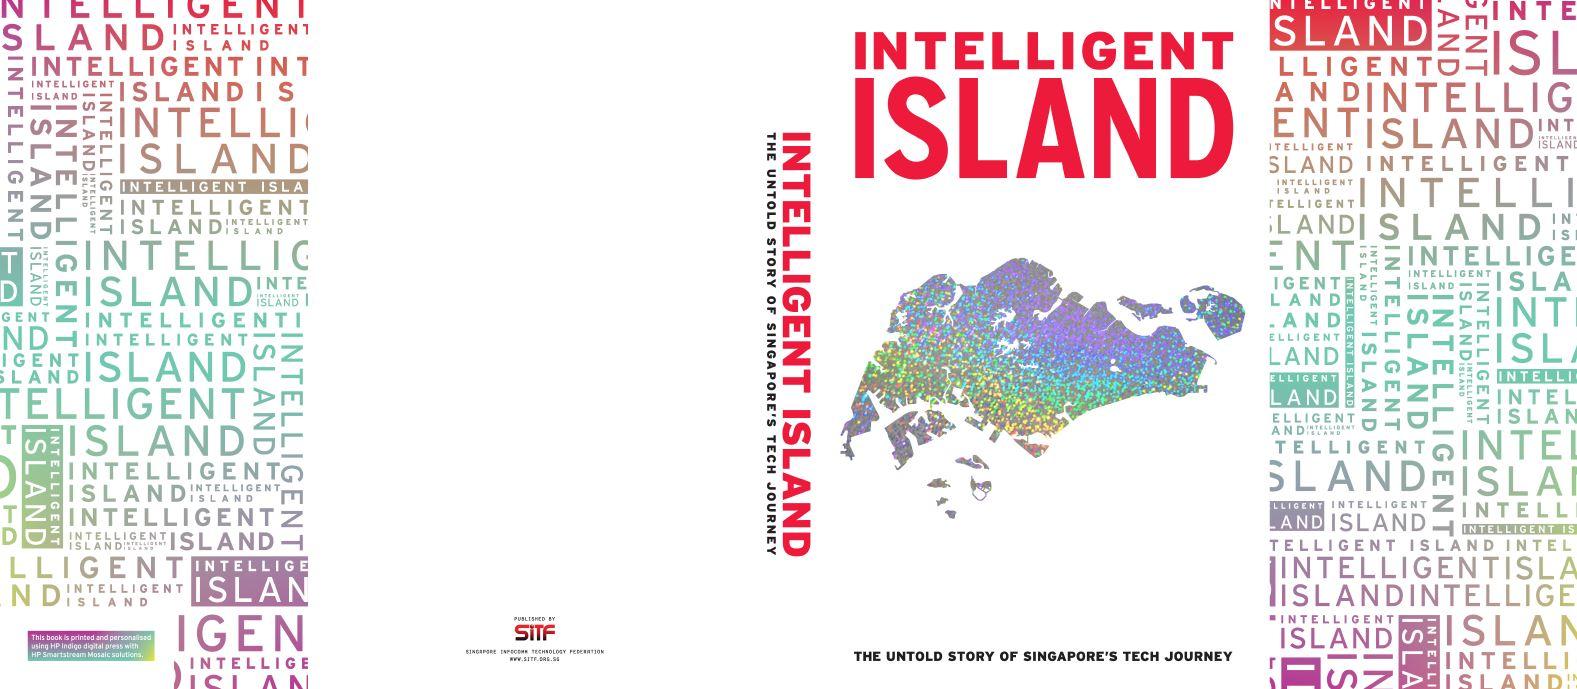 20170824 intelligent island book cover